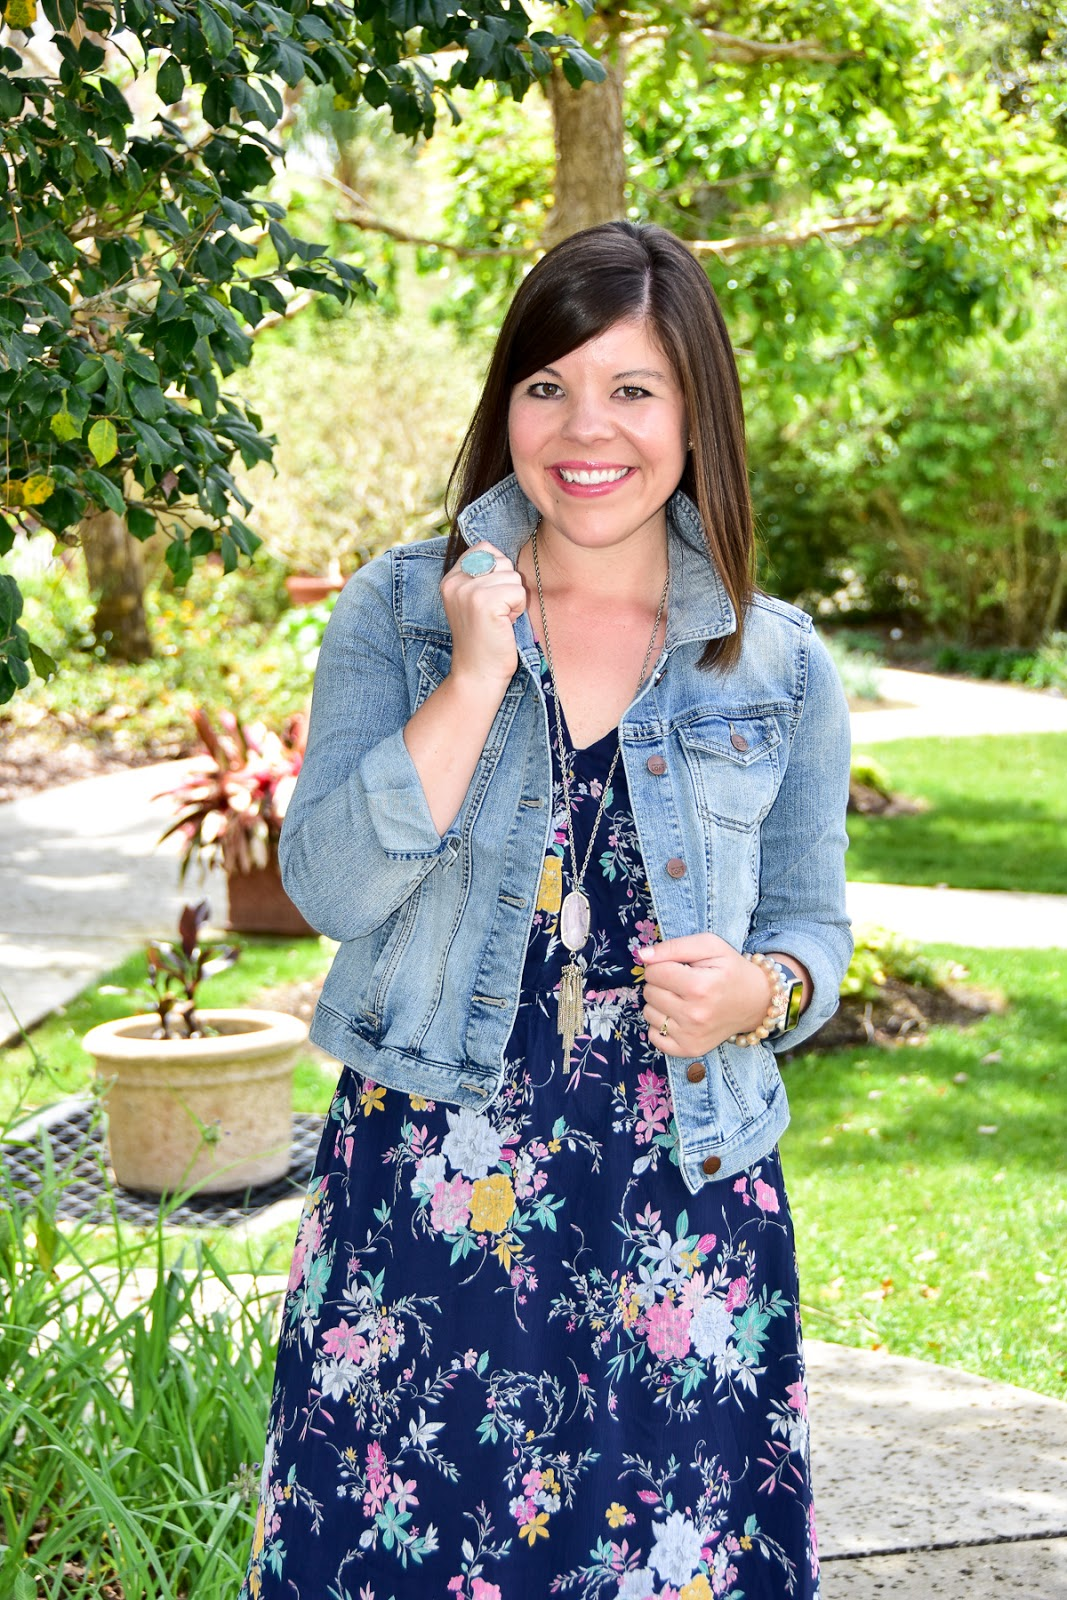 The Perfect Easter Dress (for Under $30!)